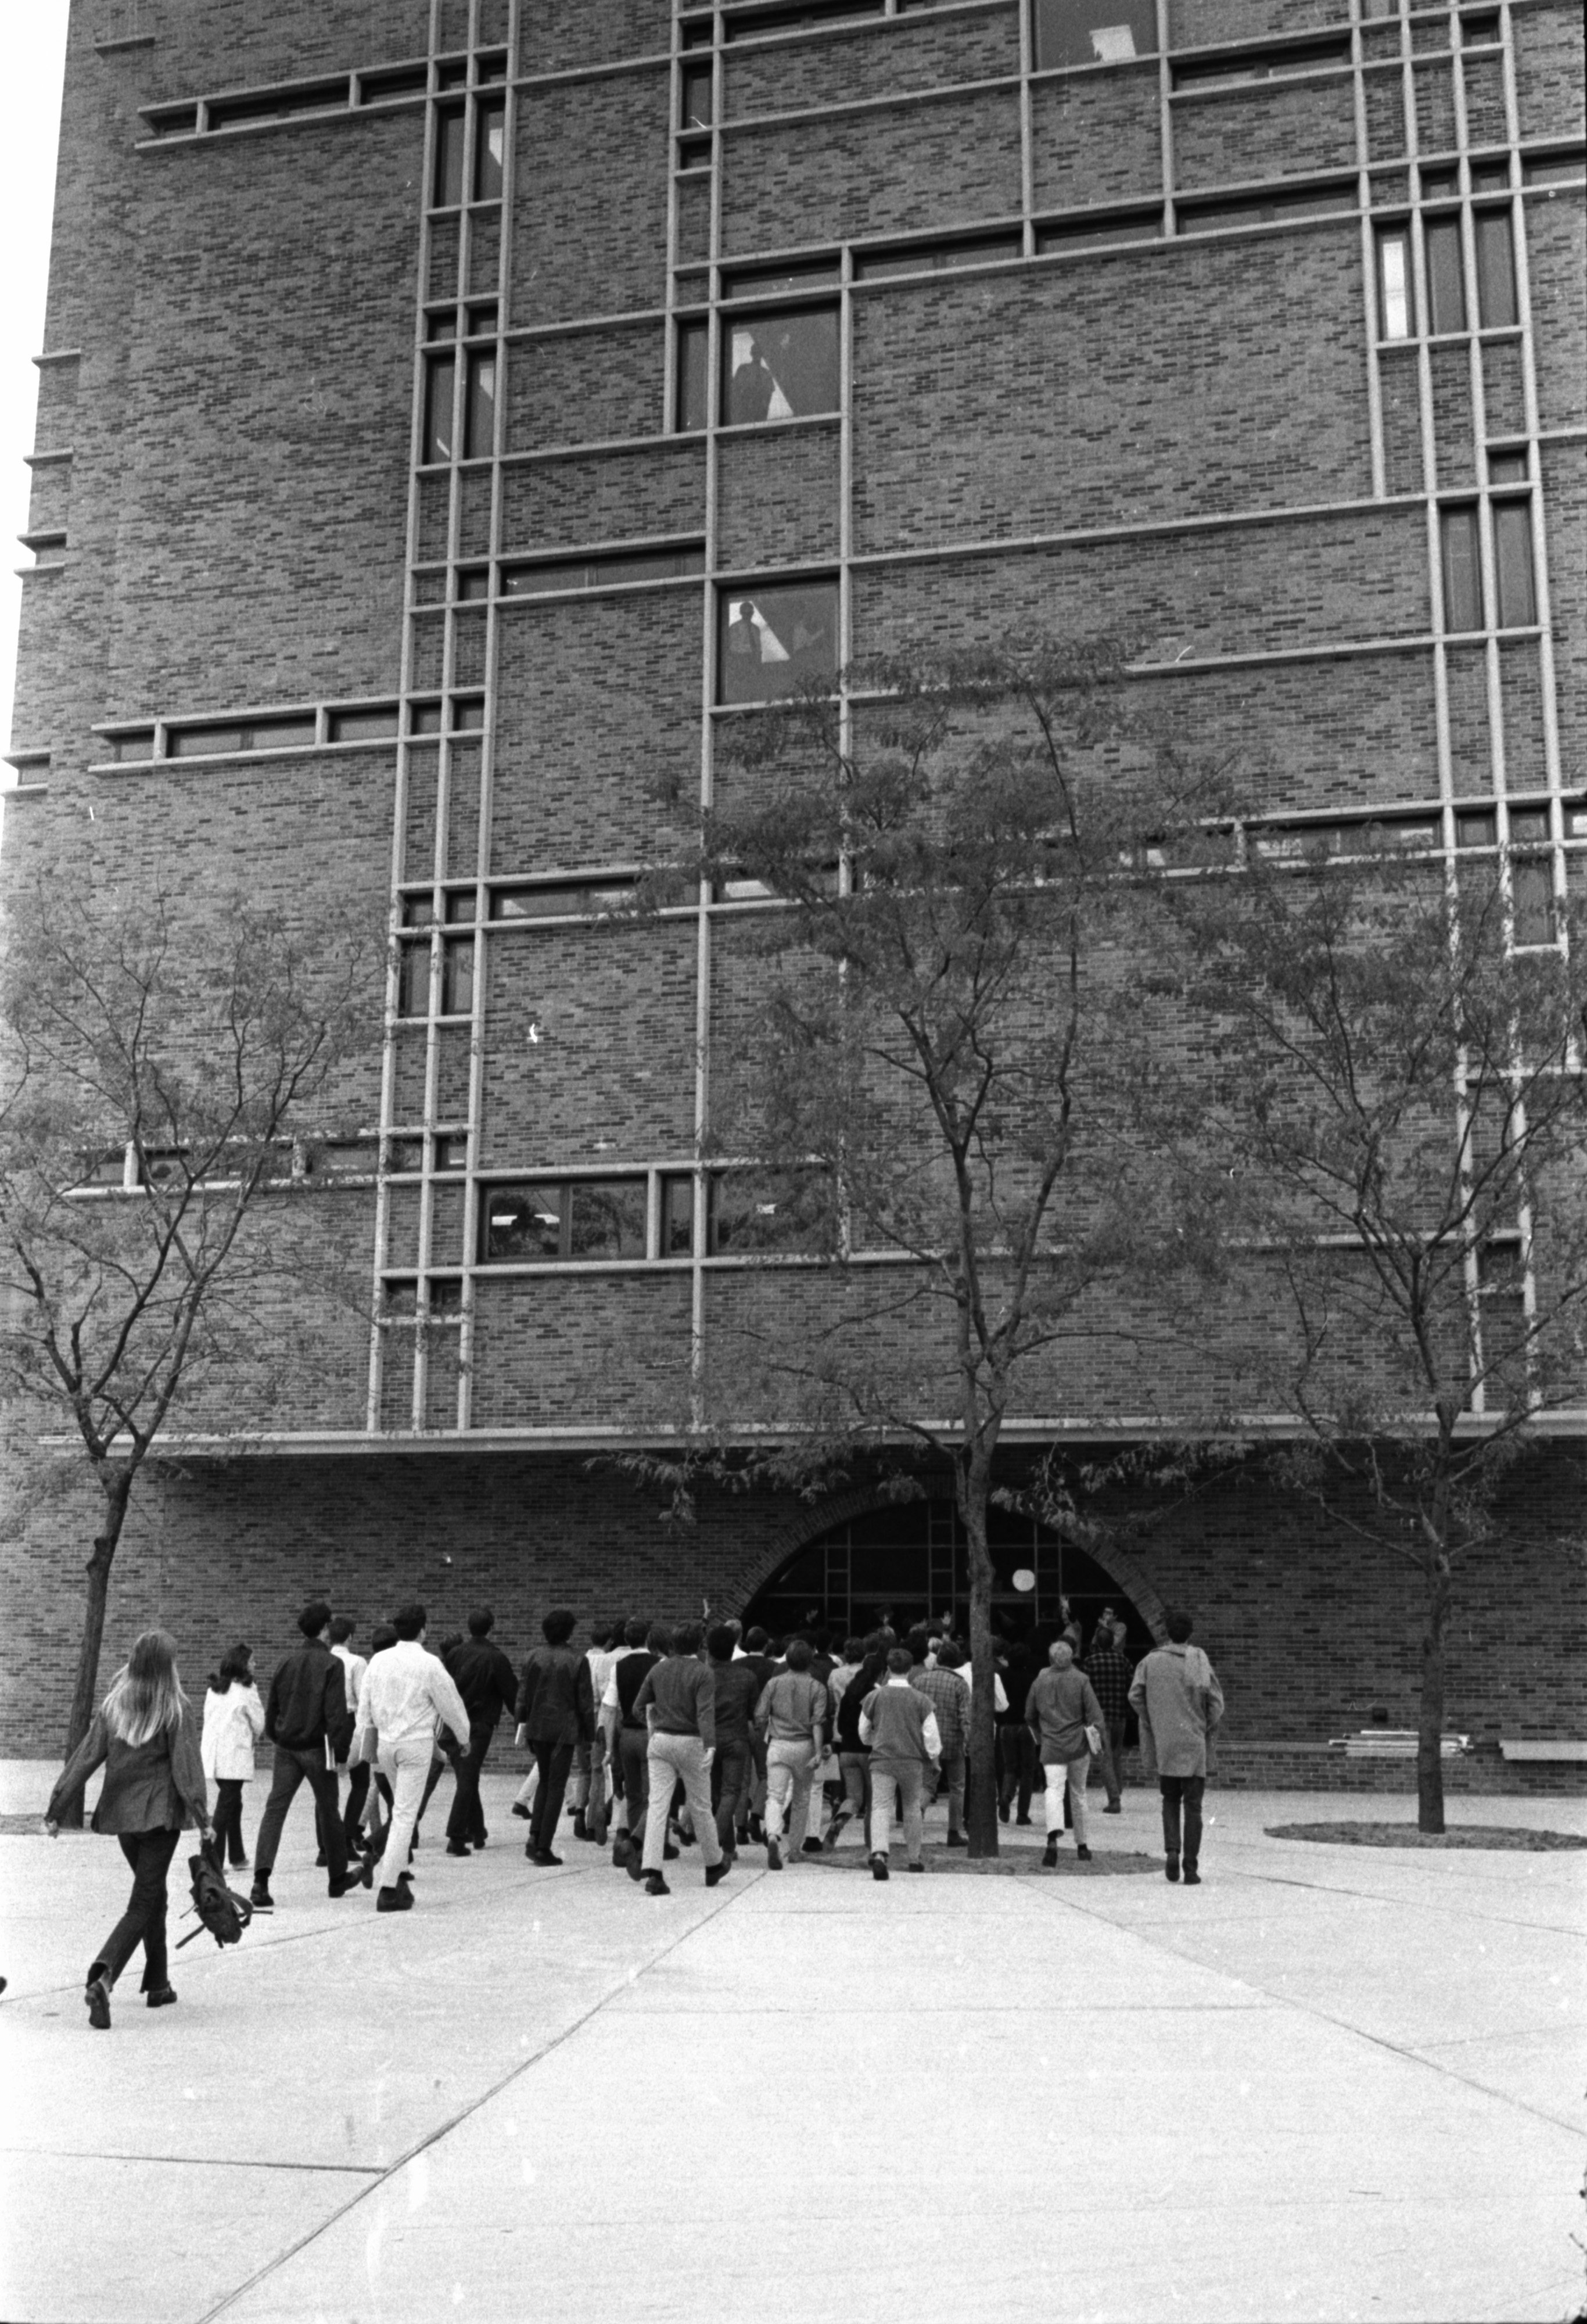 University of Michigan Students on way to Regents Meeting, September 1969 image